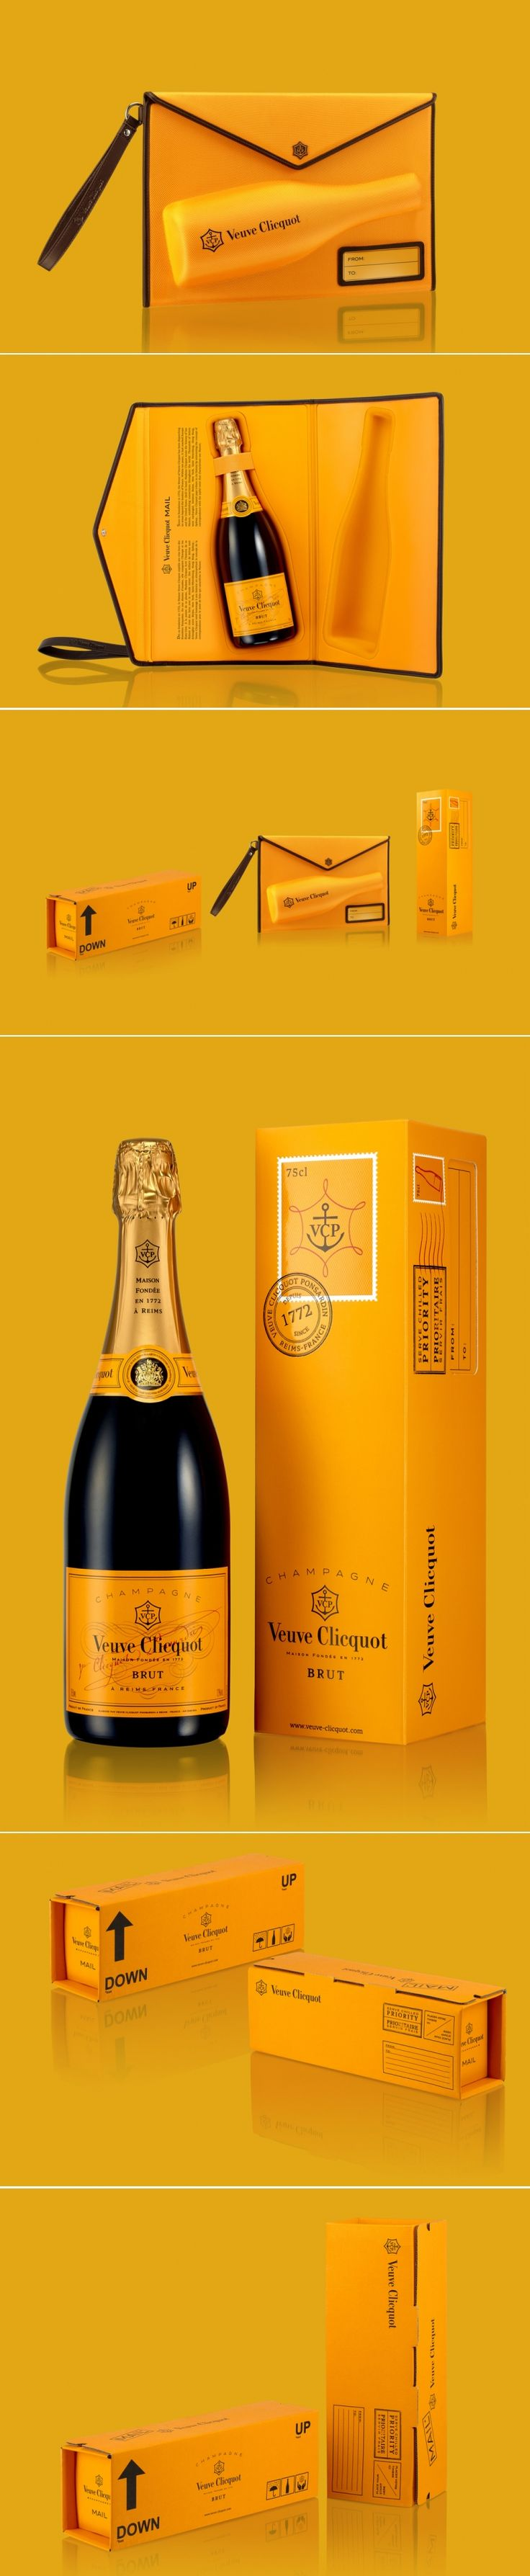 The Dieline Awards 2015: 1st Place Wine, Champagne- Clicquot Mail collection — The Dieline | Packaging & Branding Design & Innovation News